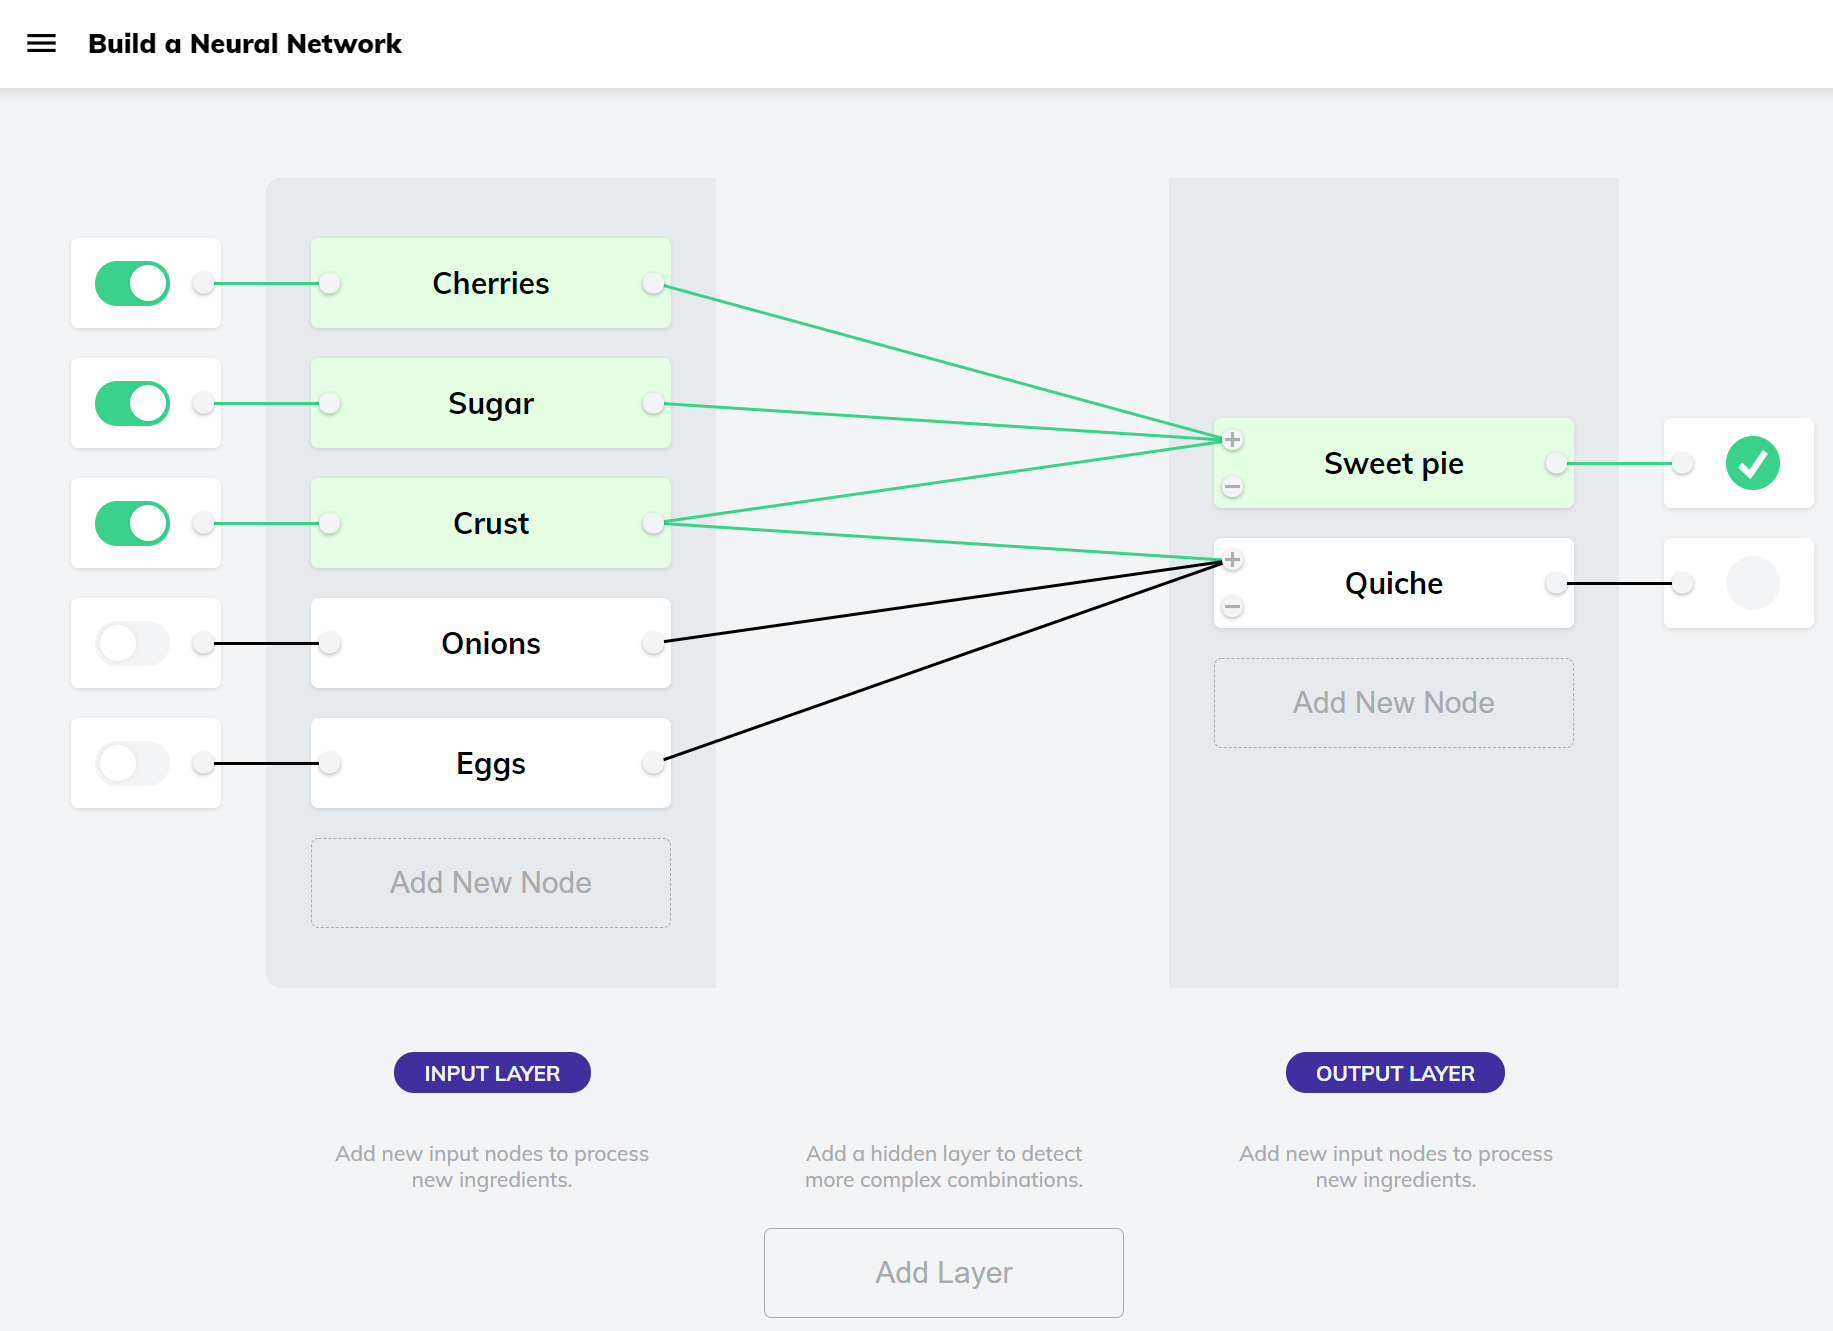 Wire up a neural network to predict which combinations of ingredients result in a delicious pie!